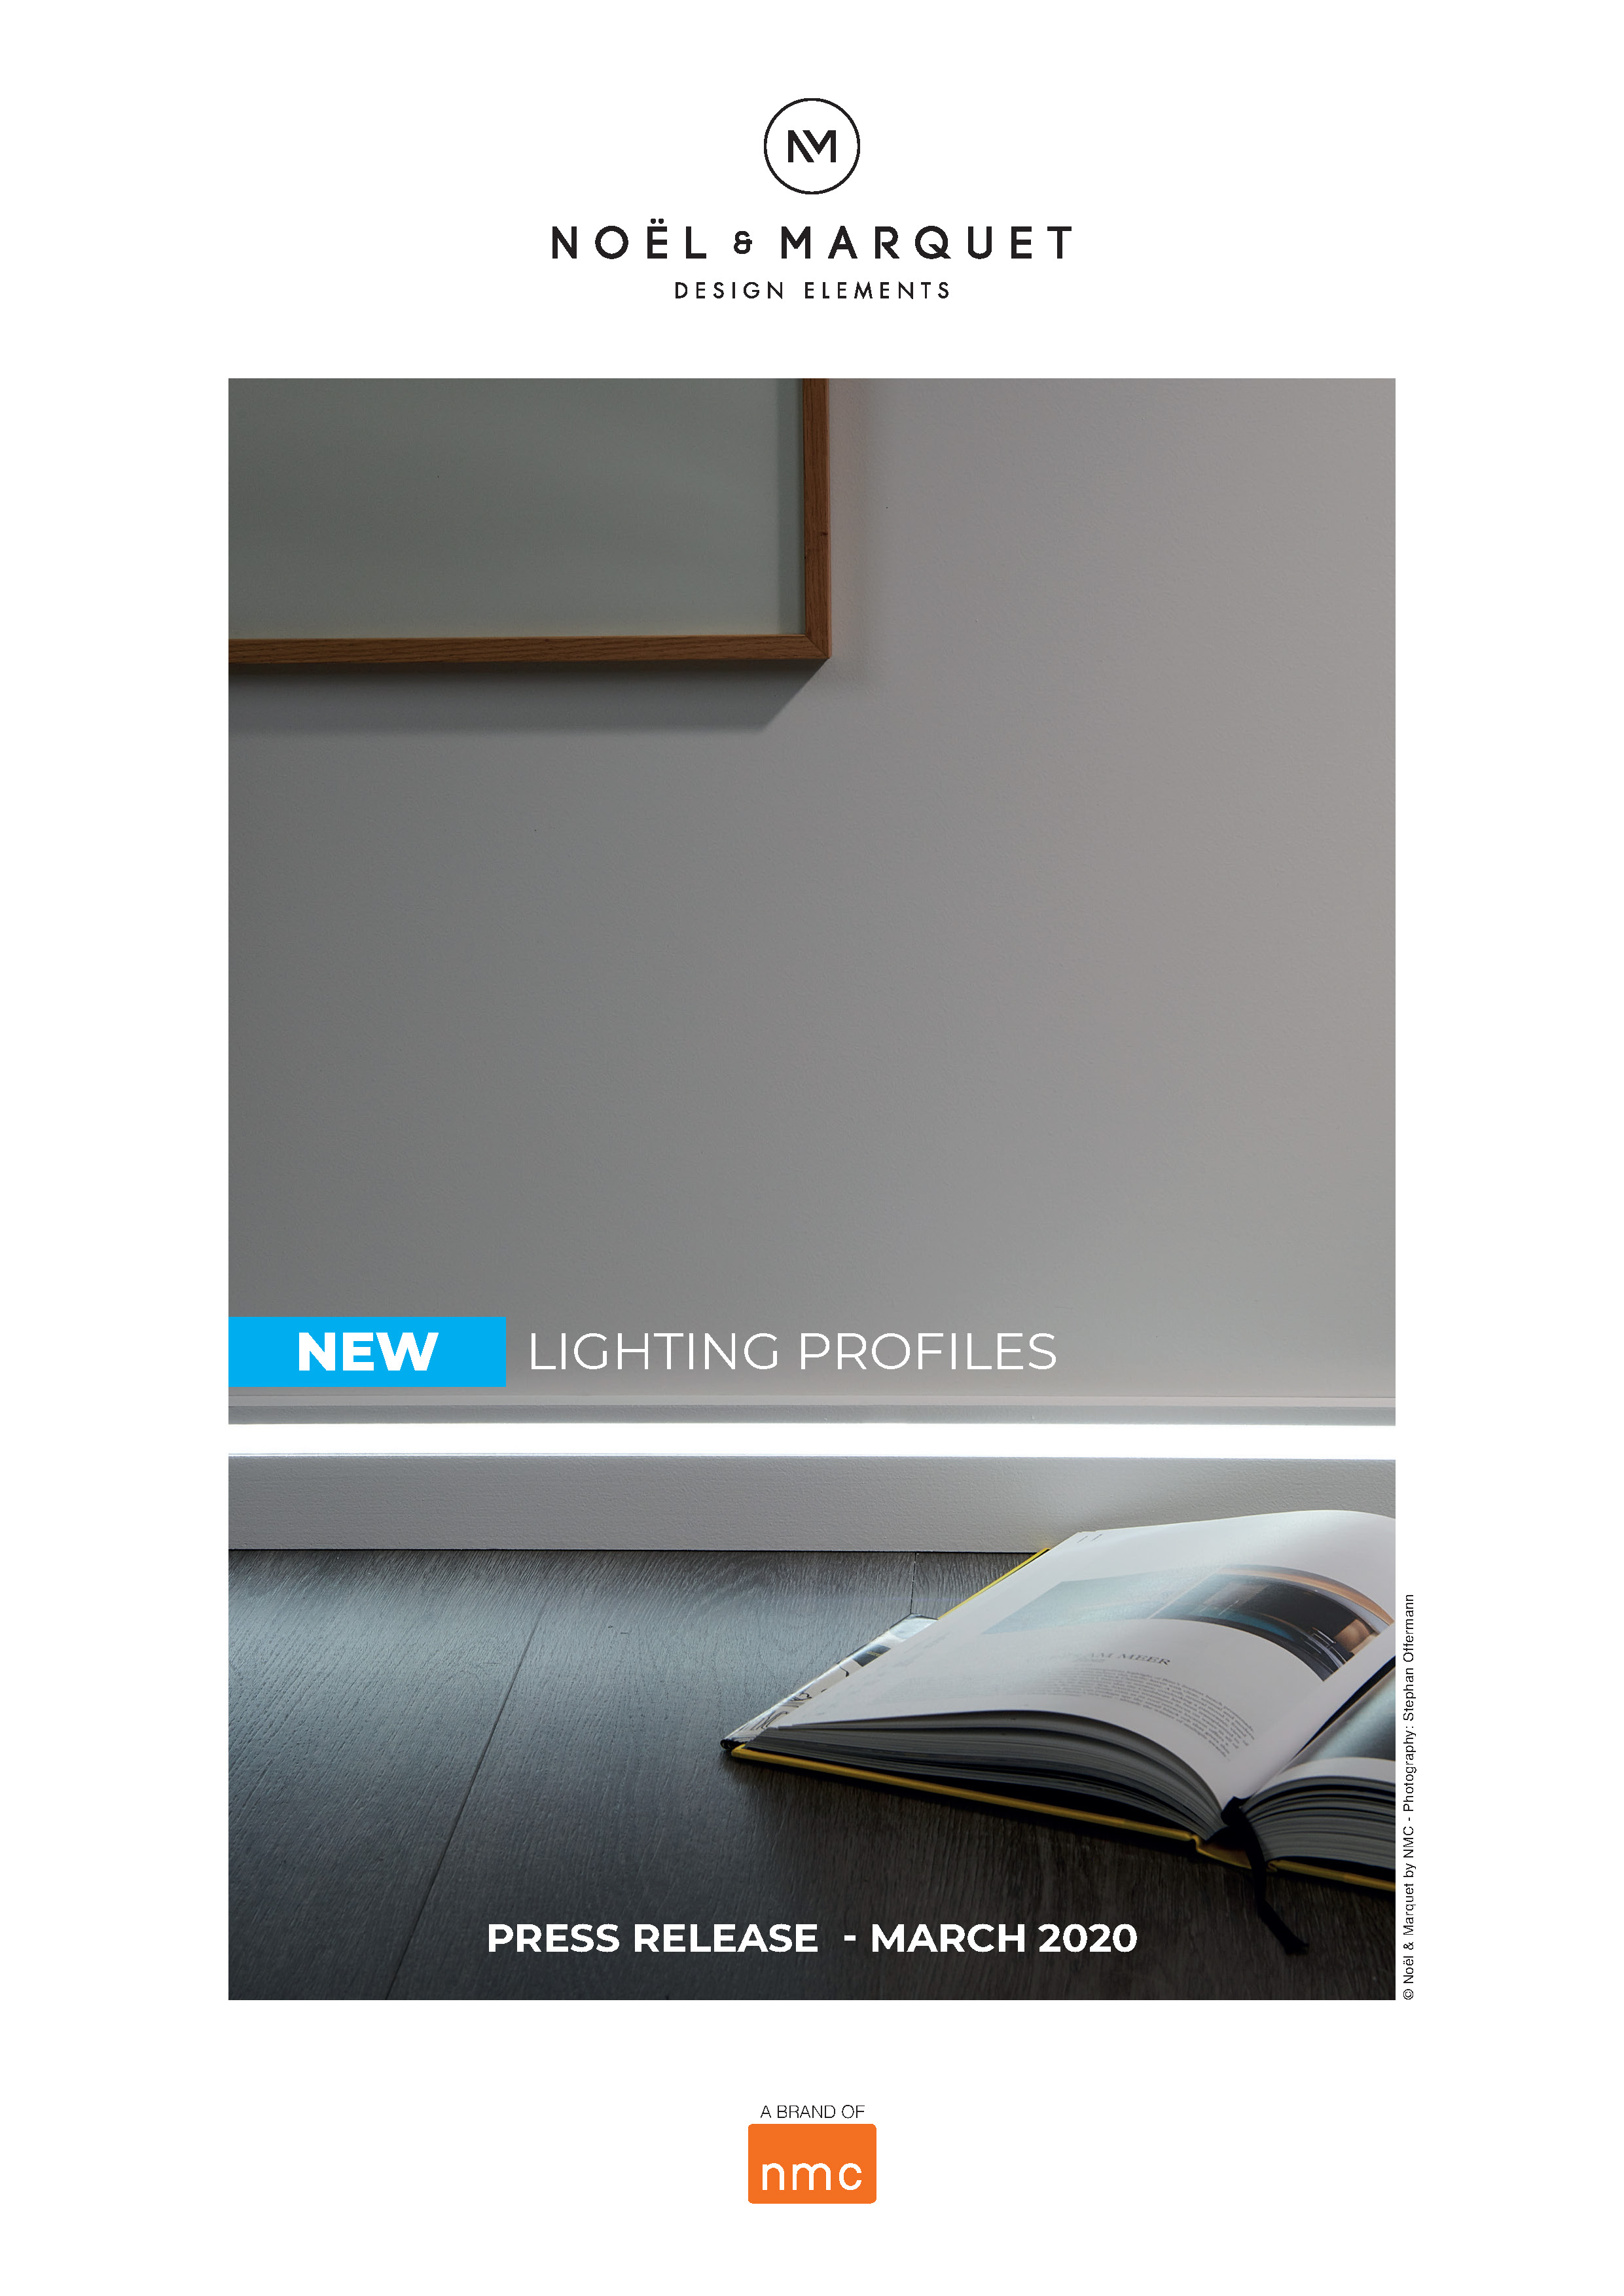 noel marquet lighting profile